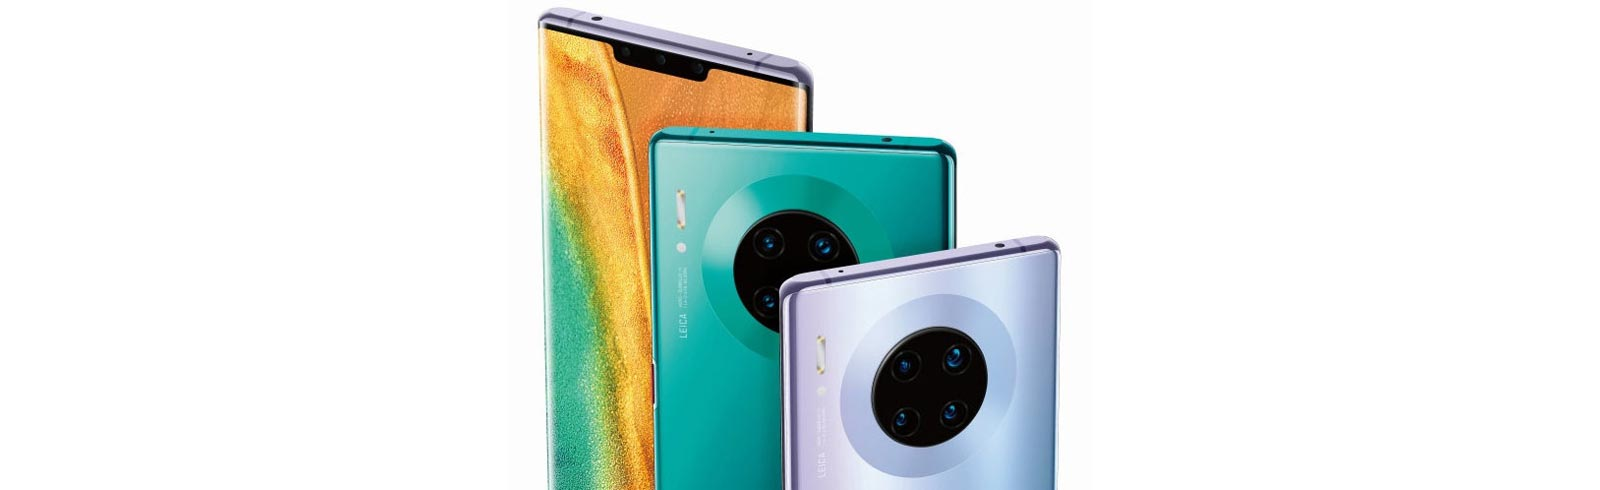 Samsung will supply OLED panels for the Huawei Mate 30 and Mate 30 Pro